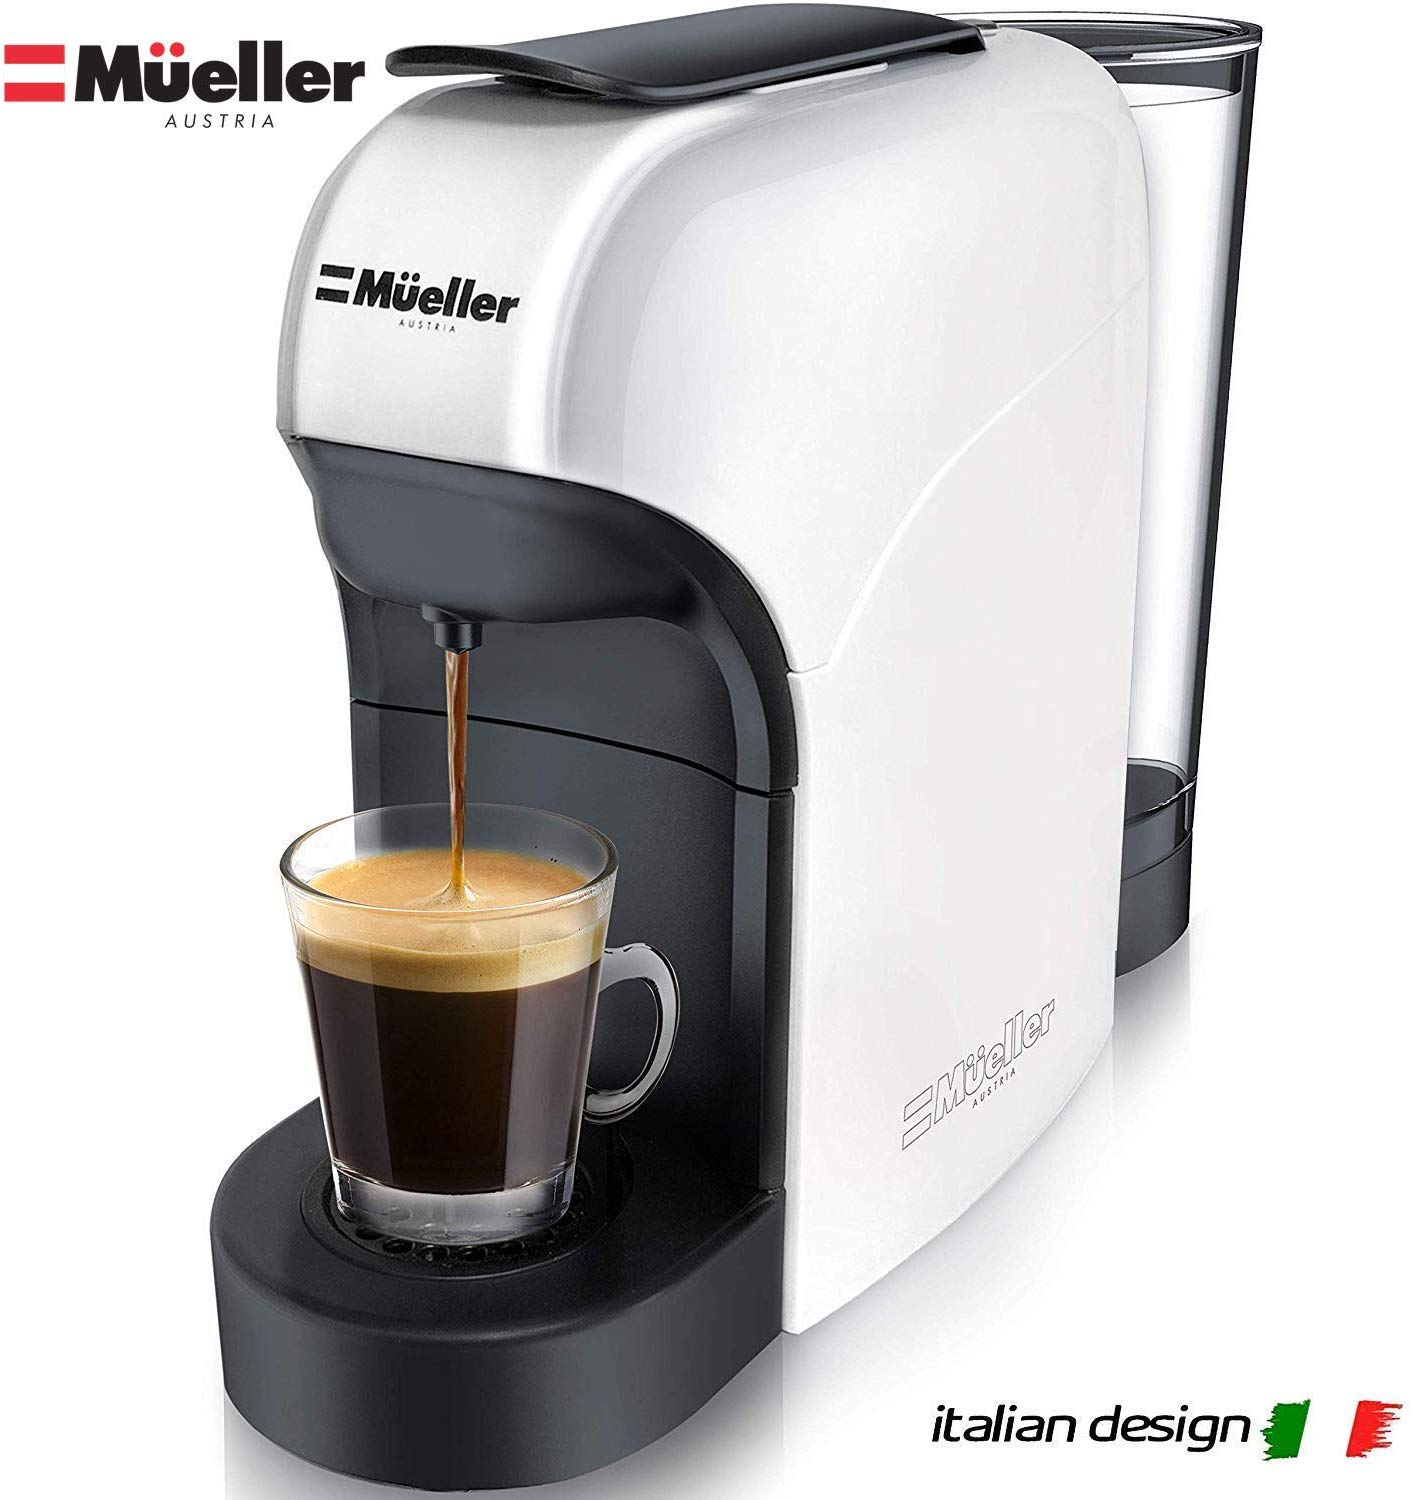 Mueller Espresso Machine for Nespresso Compatible Capsule, Premium Italian 20 Bar High Pressure Pump, 25s Fast Heating with Energy Saving System,...